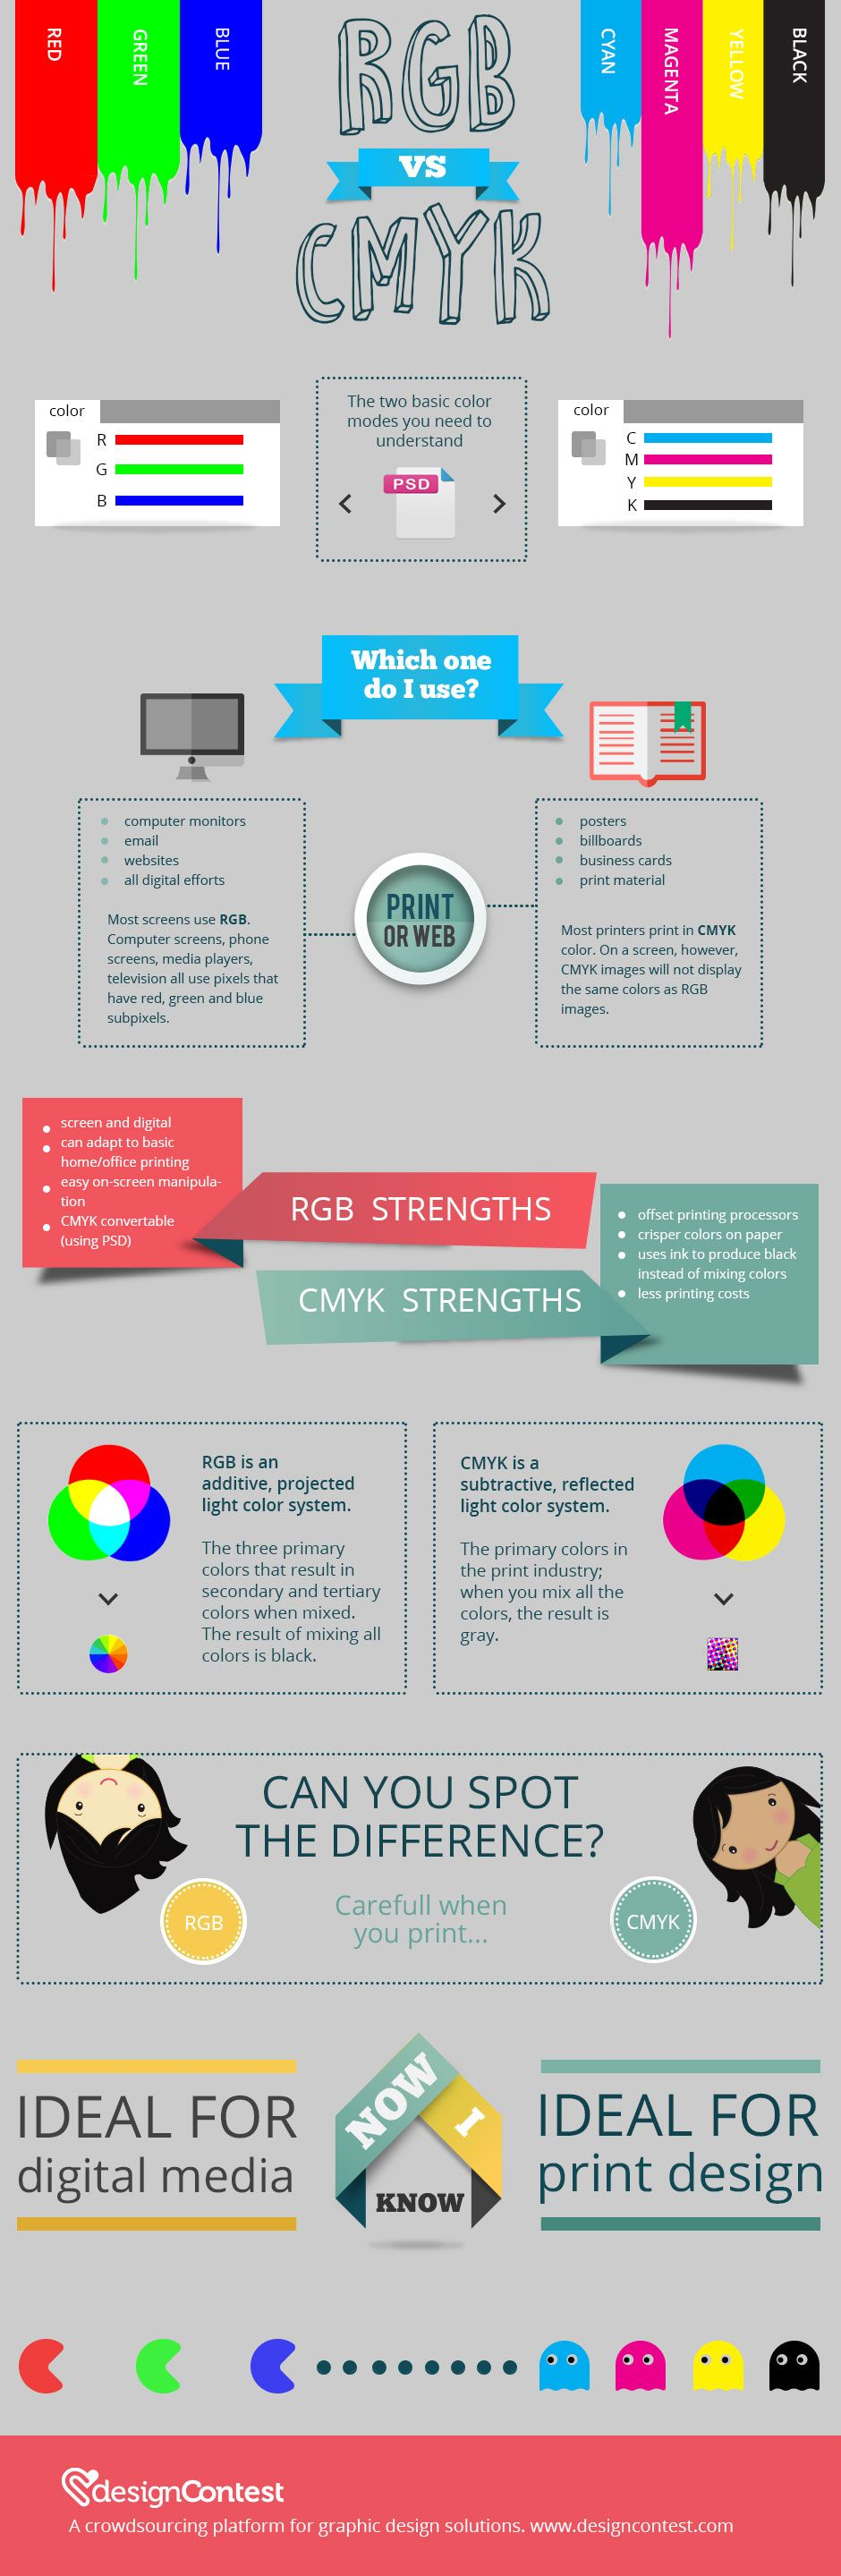 Website rgb colors - Rgb Vs Cmyk Which One To Choose Infographic